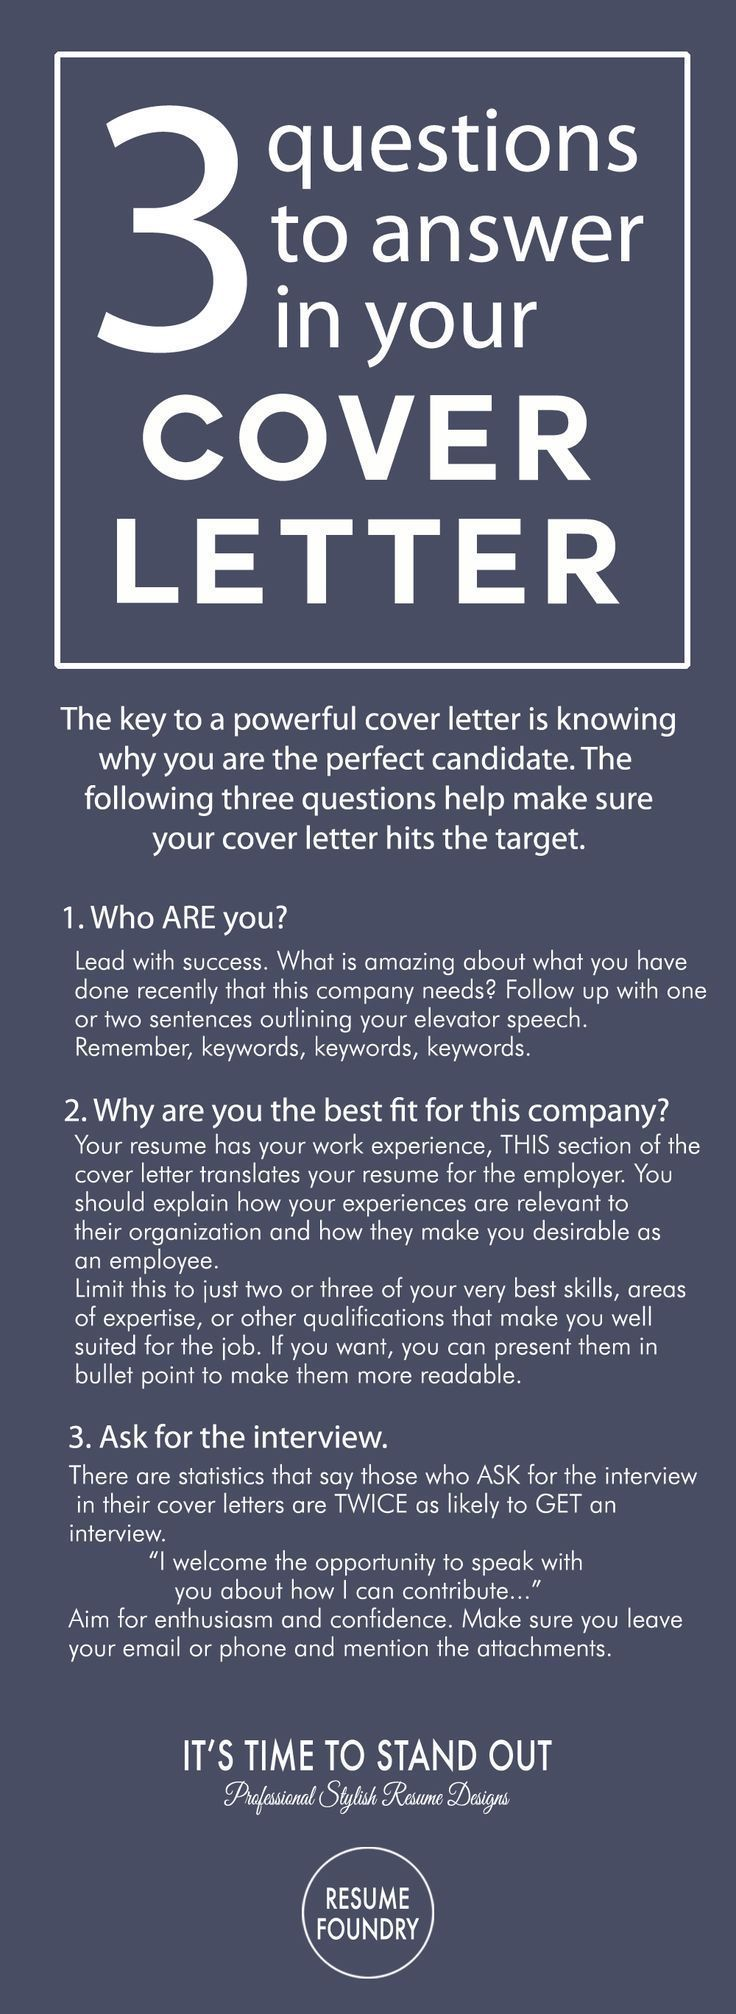 3 Questions to Answer in a Cover Letter when Applying for a Job. Go get that interview!